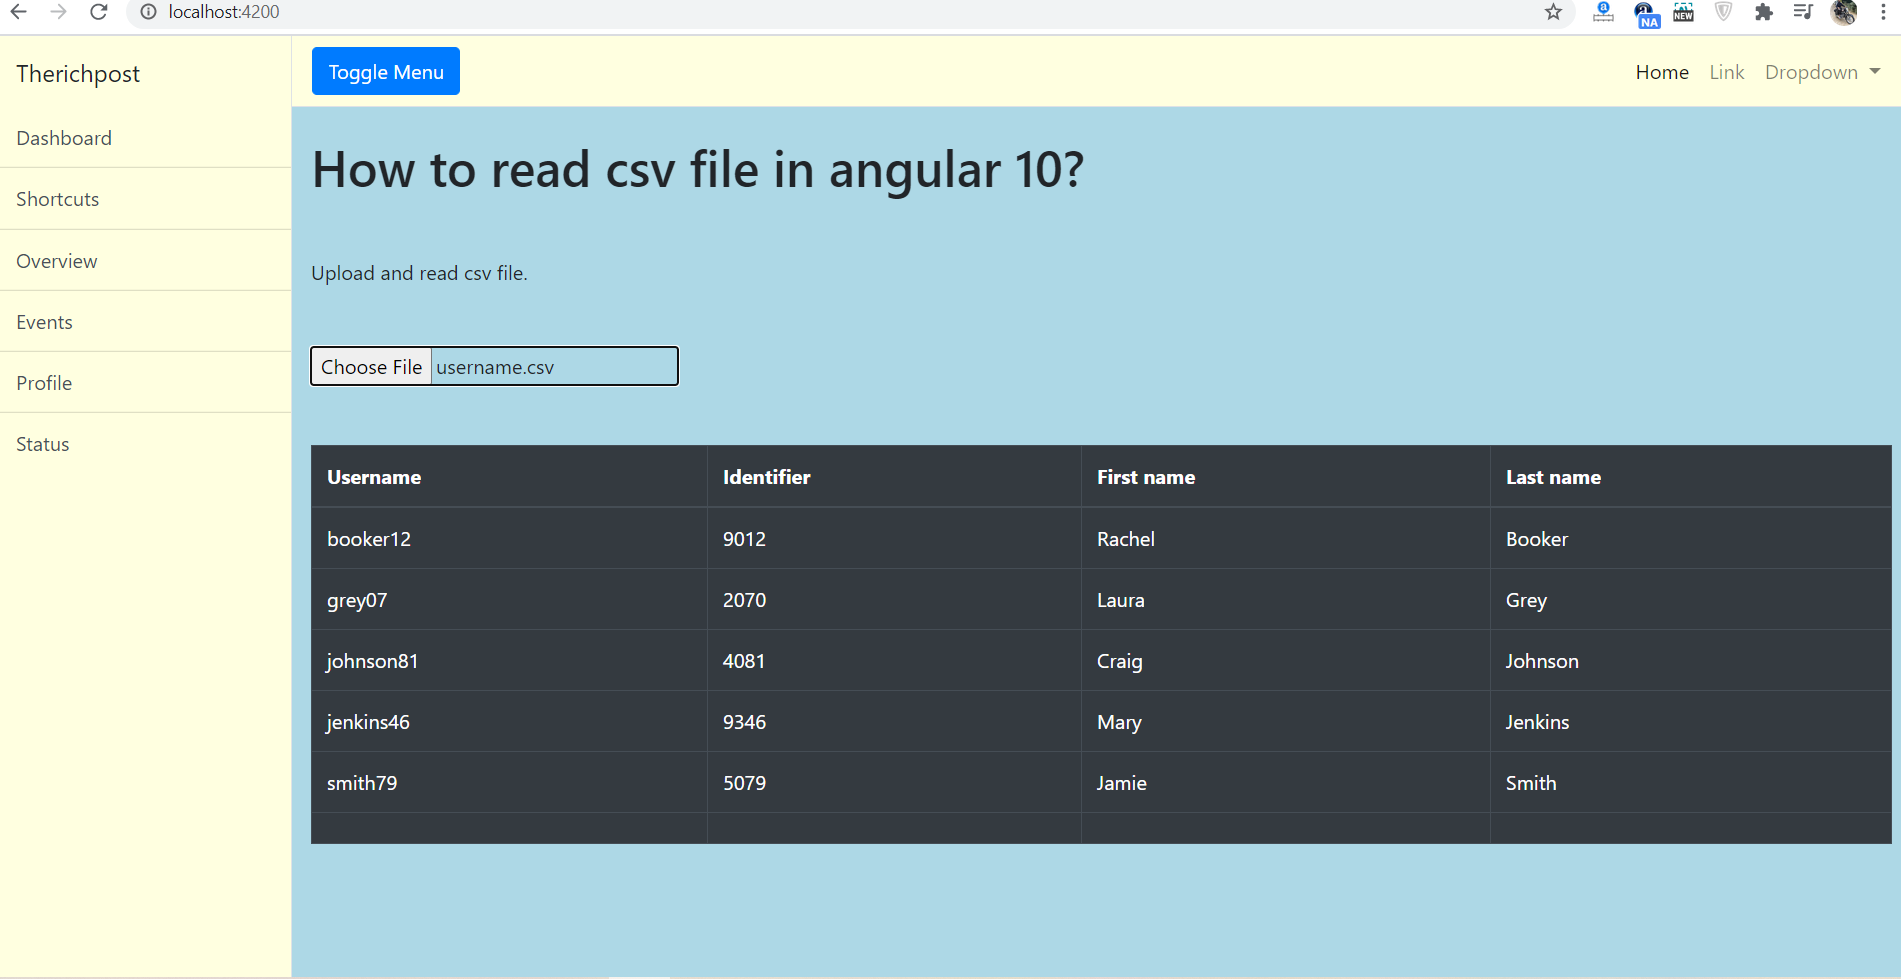 How to read csv file in angular 10?